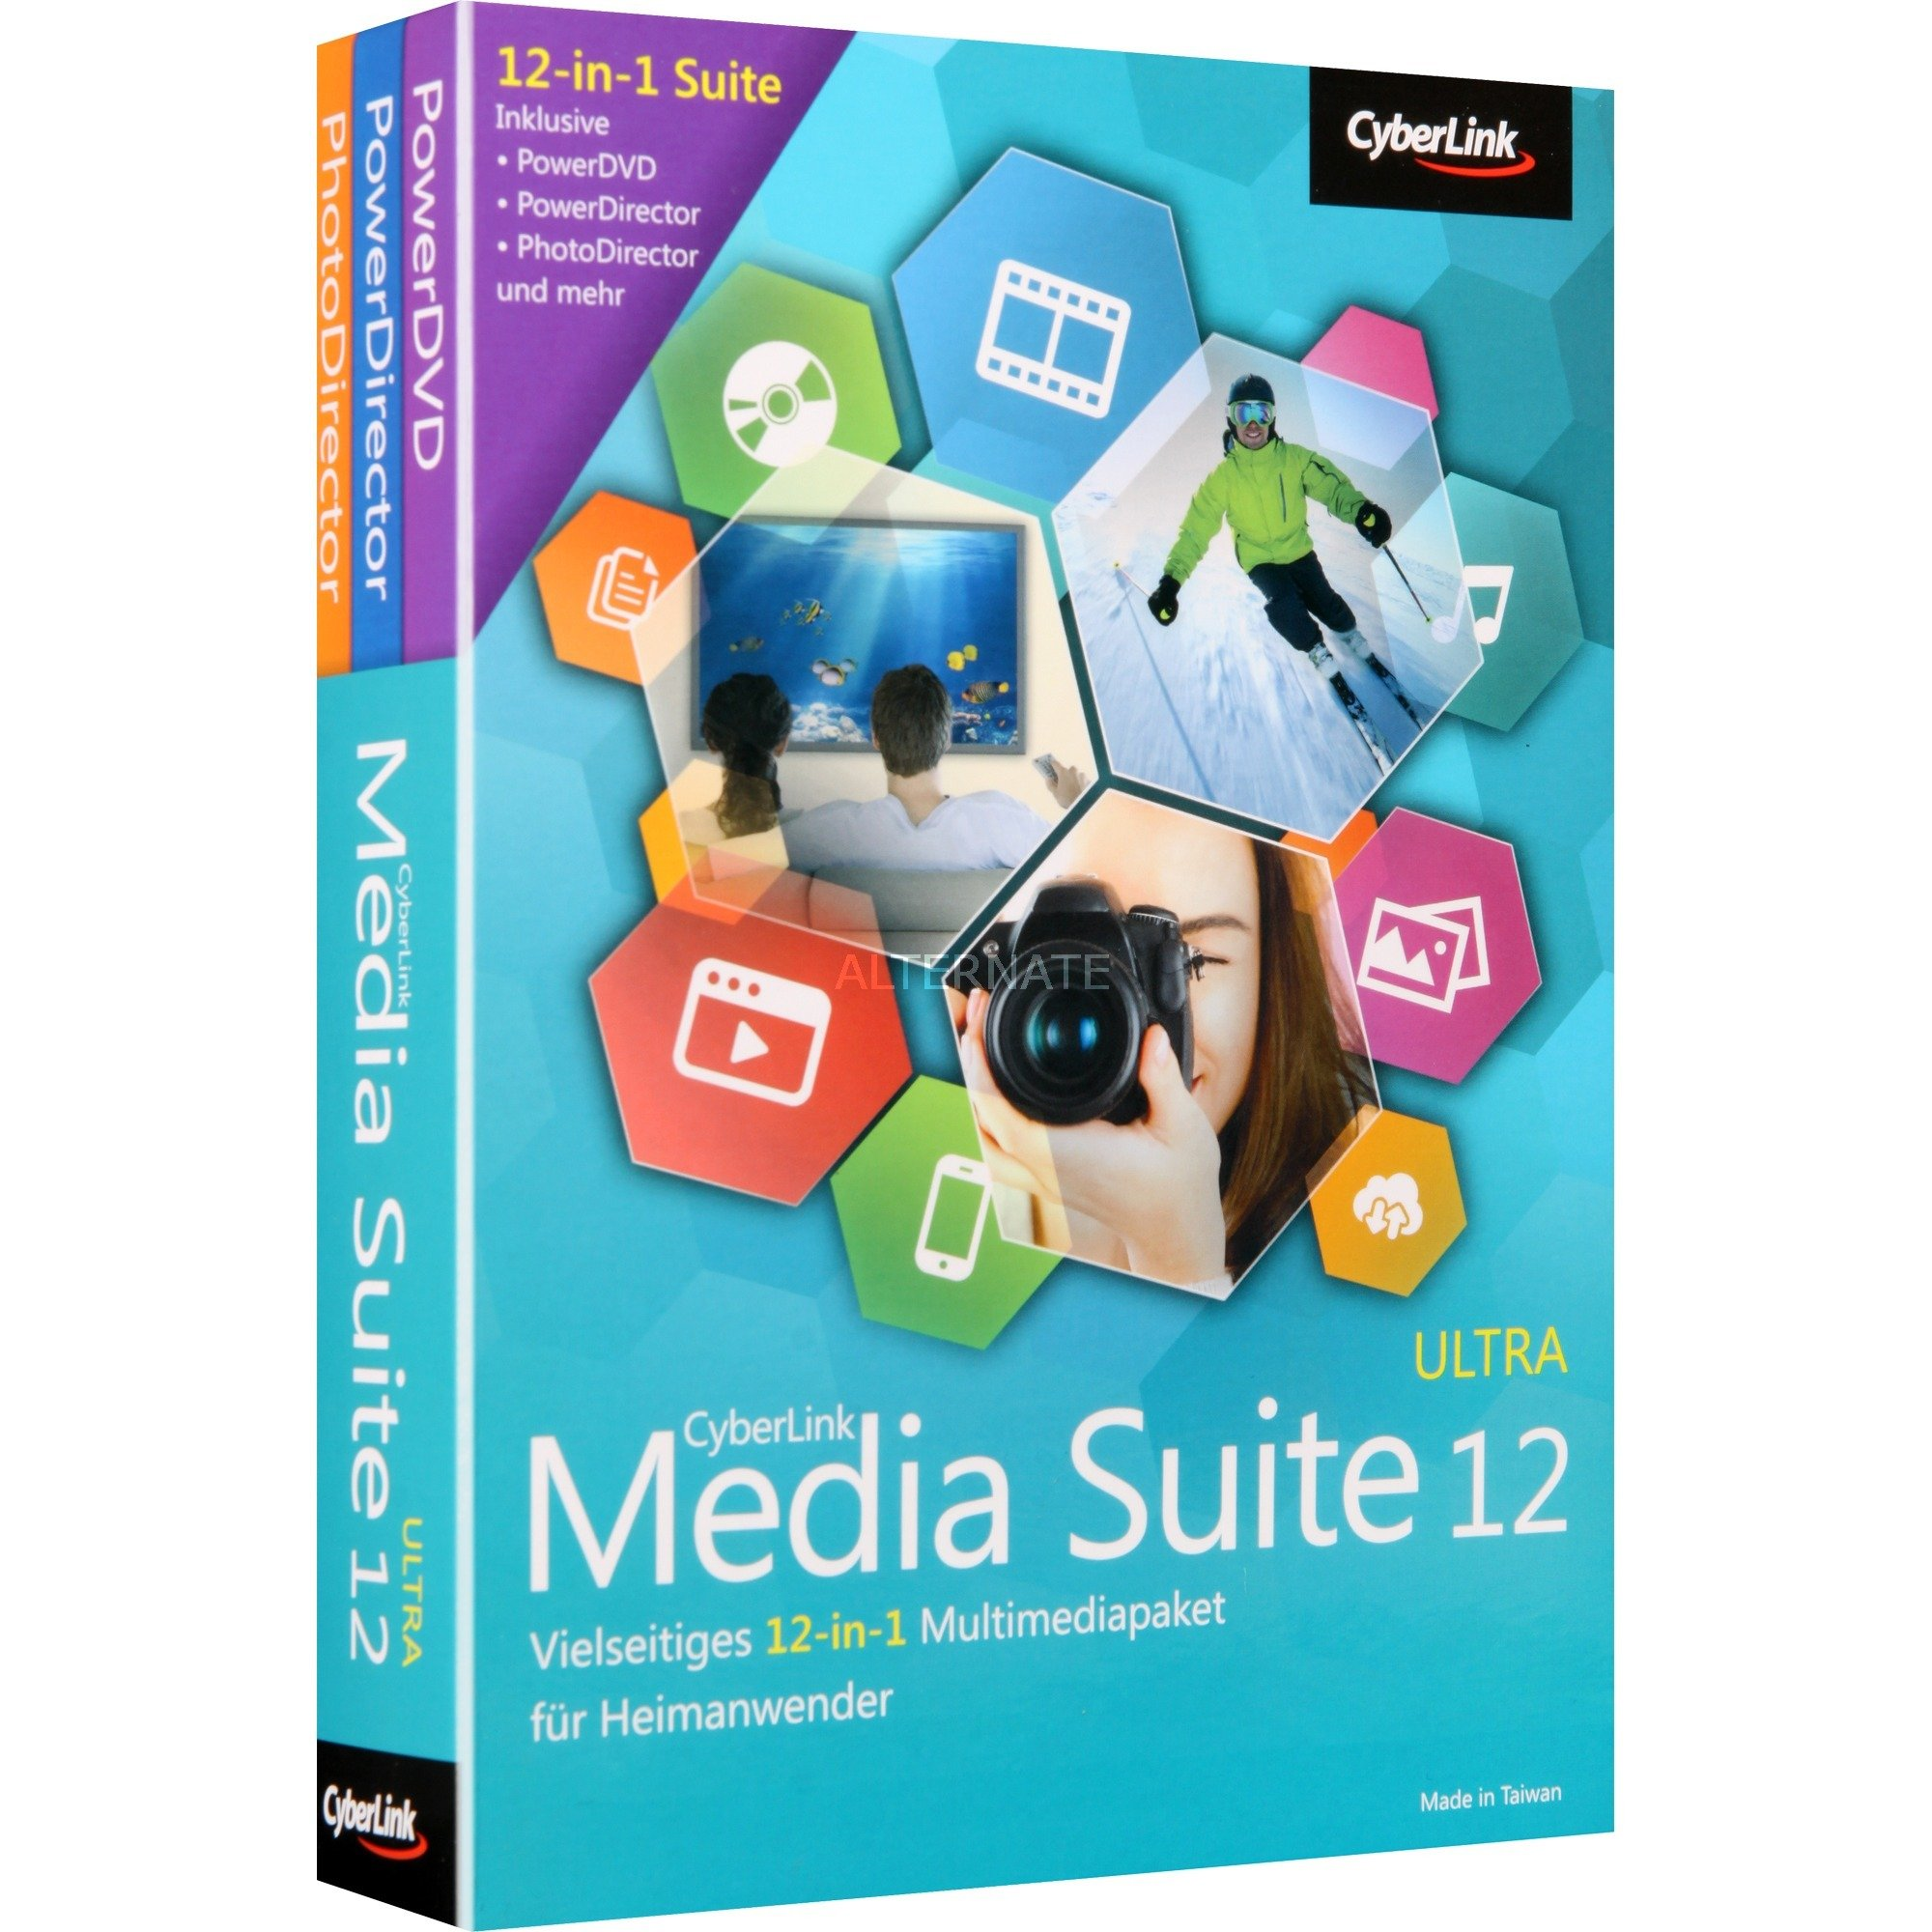 media-suite-12-ultra-software